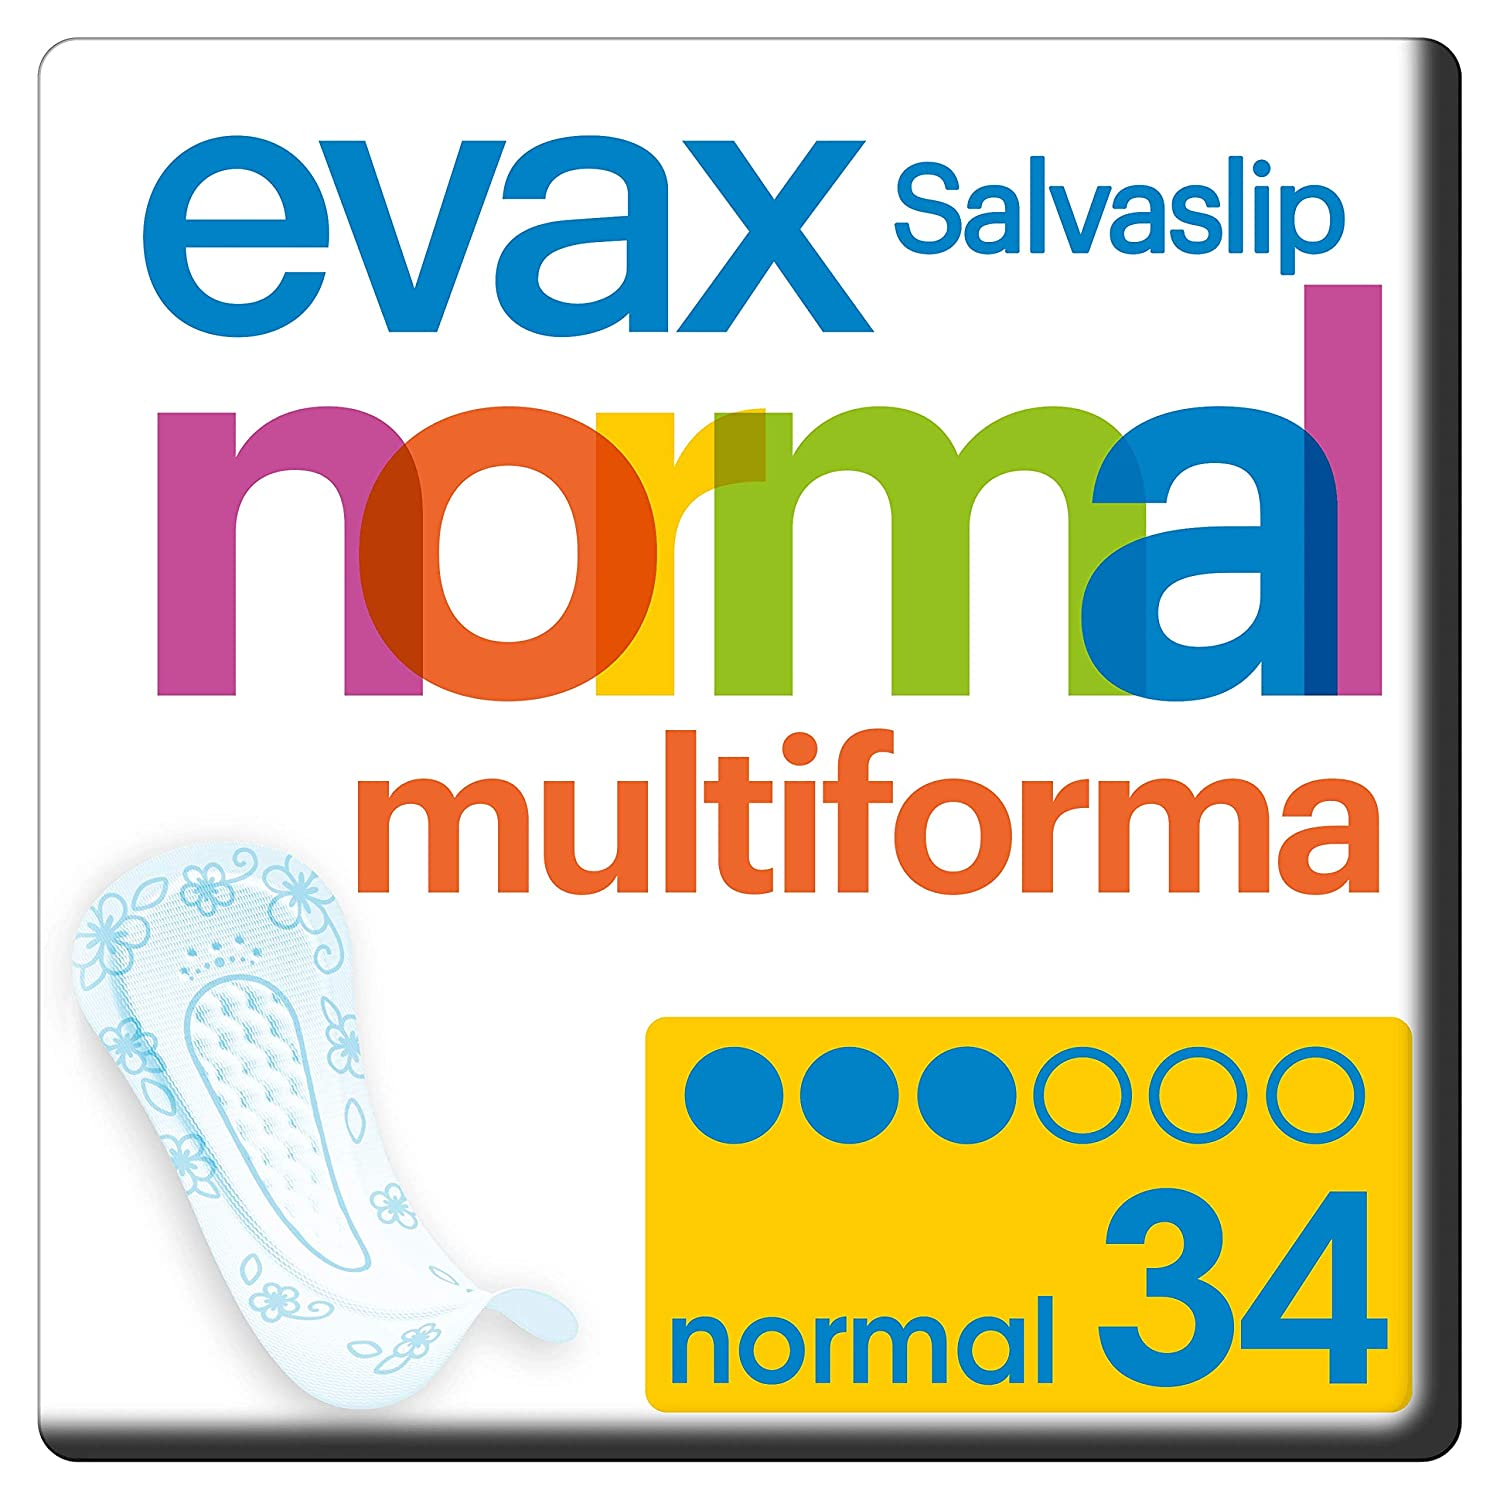 Evax Salvaslip Normal Multiforma Protegeslips 34 Unidades: Amazon ...